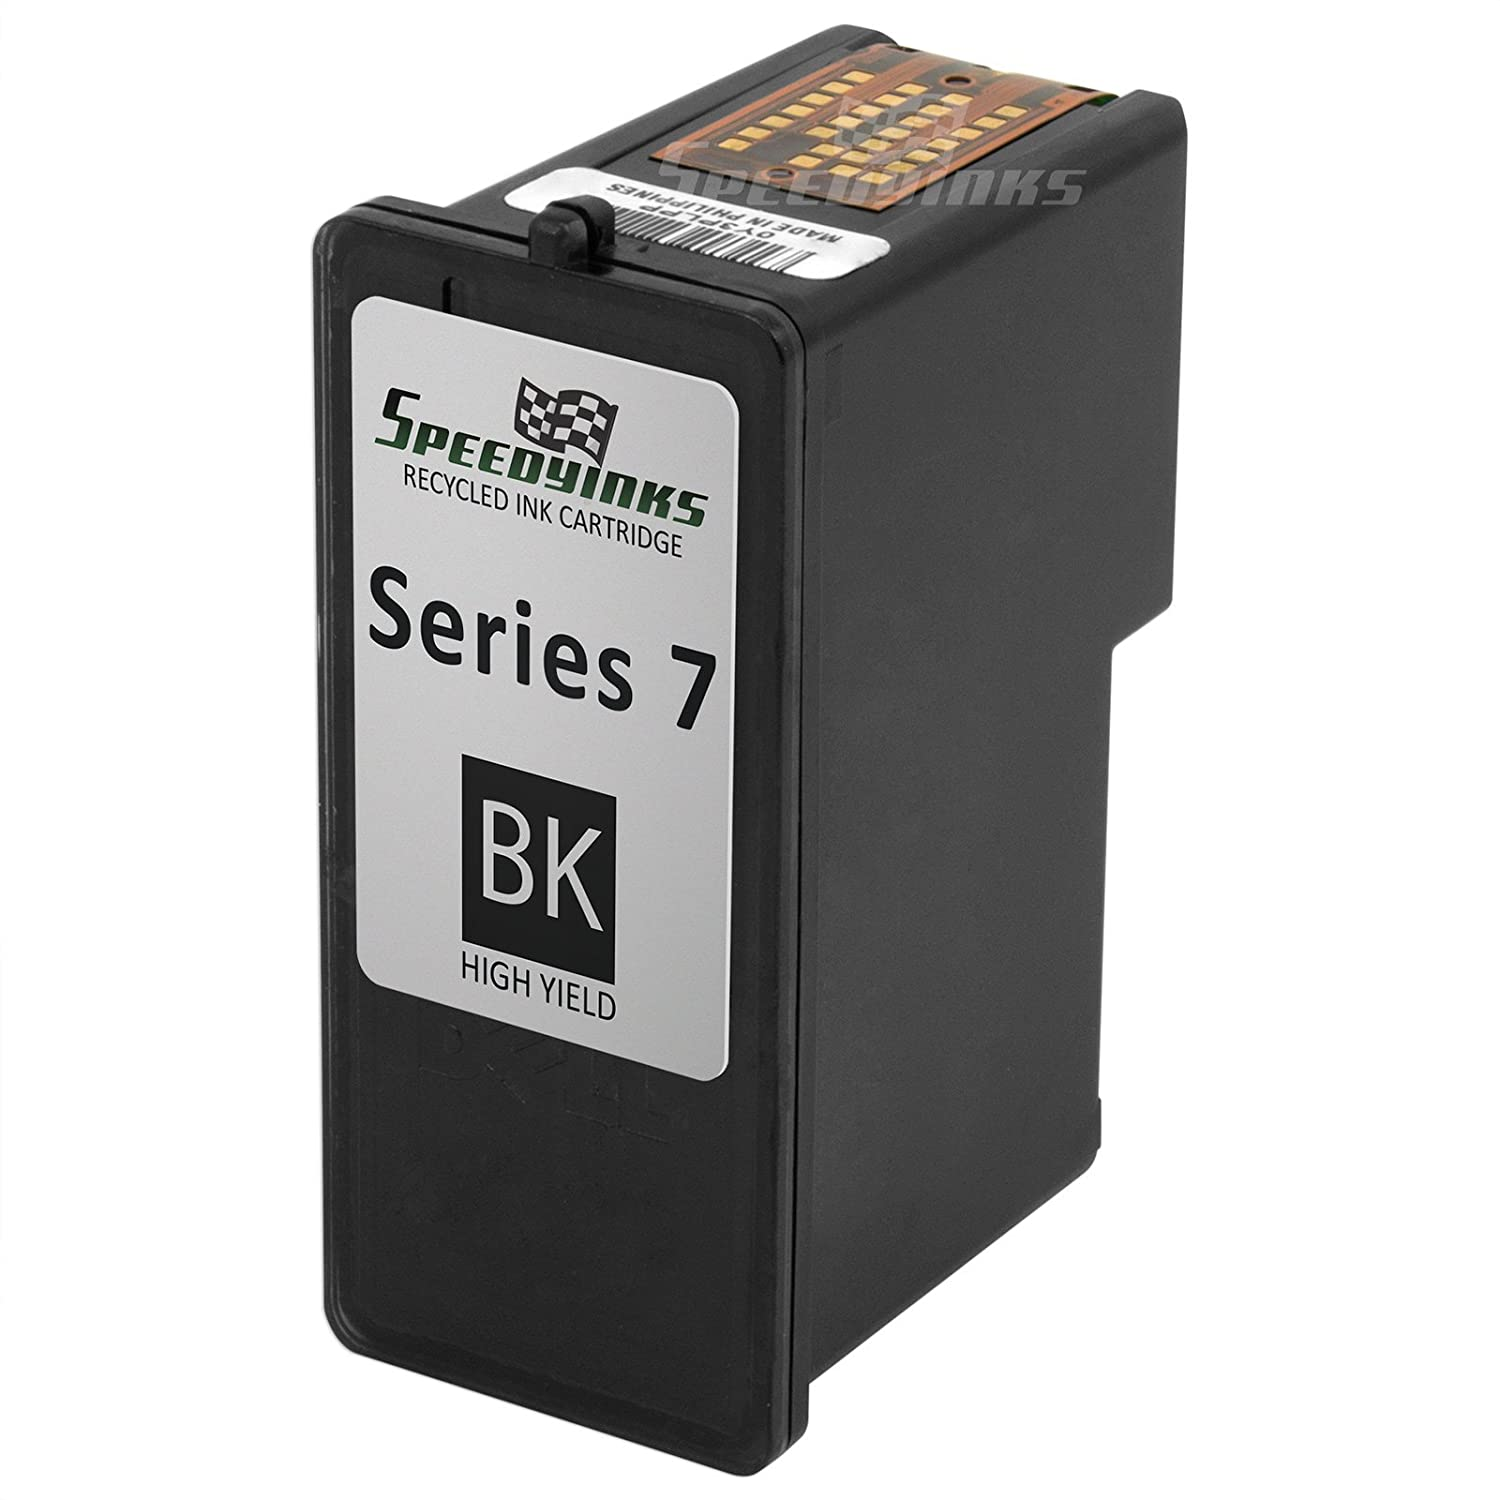 SpeedyInks Remanufactured Dell CH883 / GR274 Series 7 High Yield Black Ink Cartridge For Dell Photo All-in-One